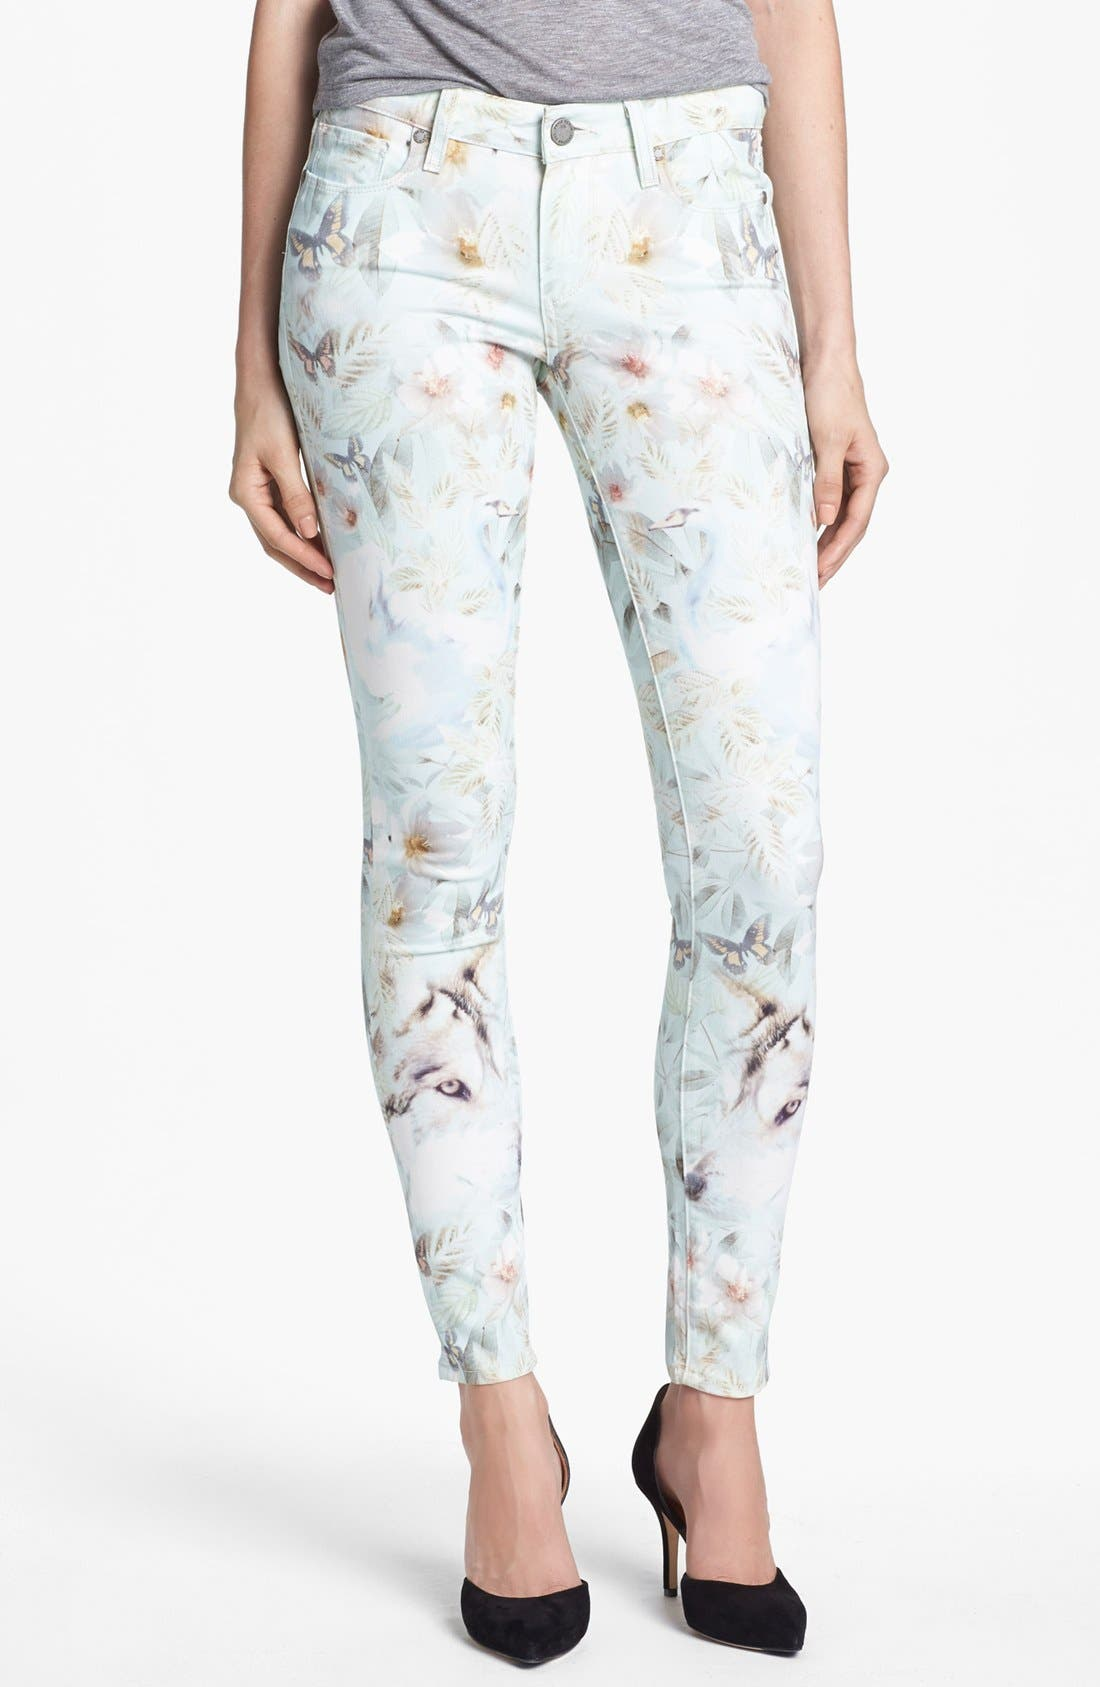 Alternate Image 1 Selected - Paige Denim 'Verdugo' Print Ultra Skinny Jeans (Grey Wind)